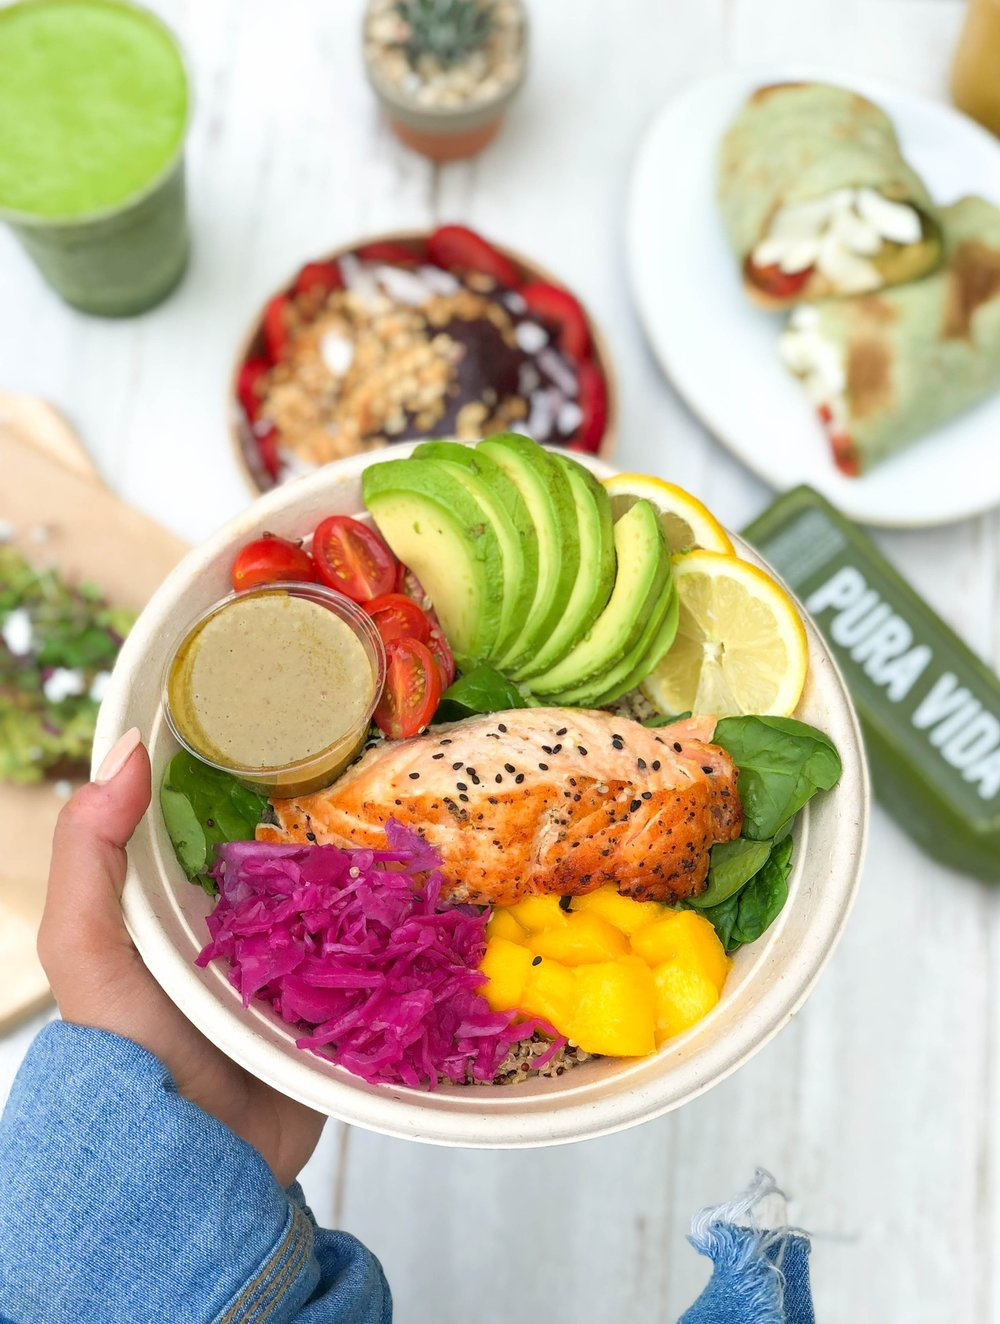 PROTEIN BOWLS - FILLING AND NUTRIENT RICH BOWLS ARE PERFECT FOR LUNCH, DINNER OR THAT POST WORK OUT FUEL. OUR BOWLS ARE MADE WITH ORGANIC WHOLESOME GRAINS, LEAN PROTEINS AND FRESH VEGGIES. sustainably